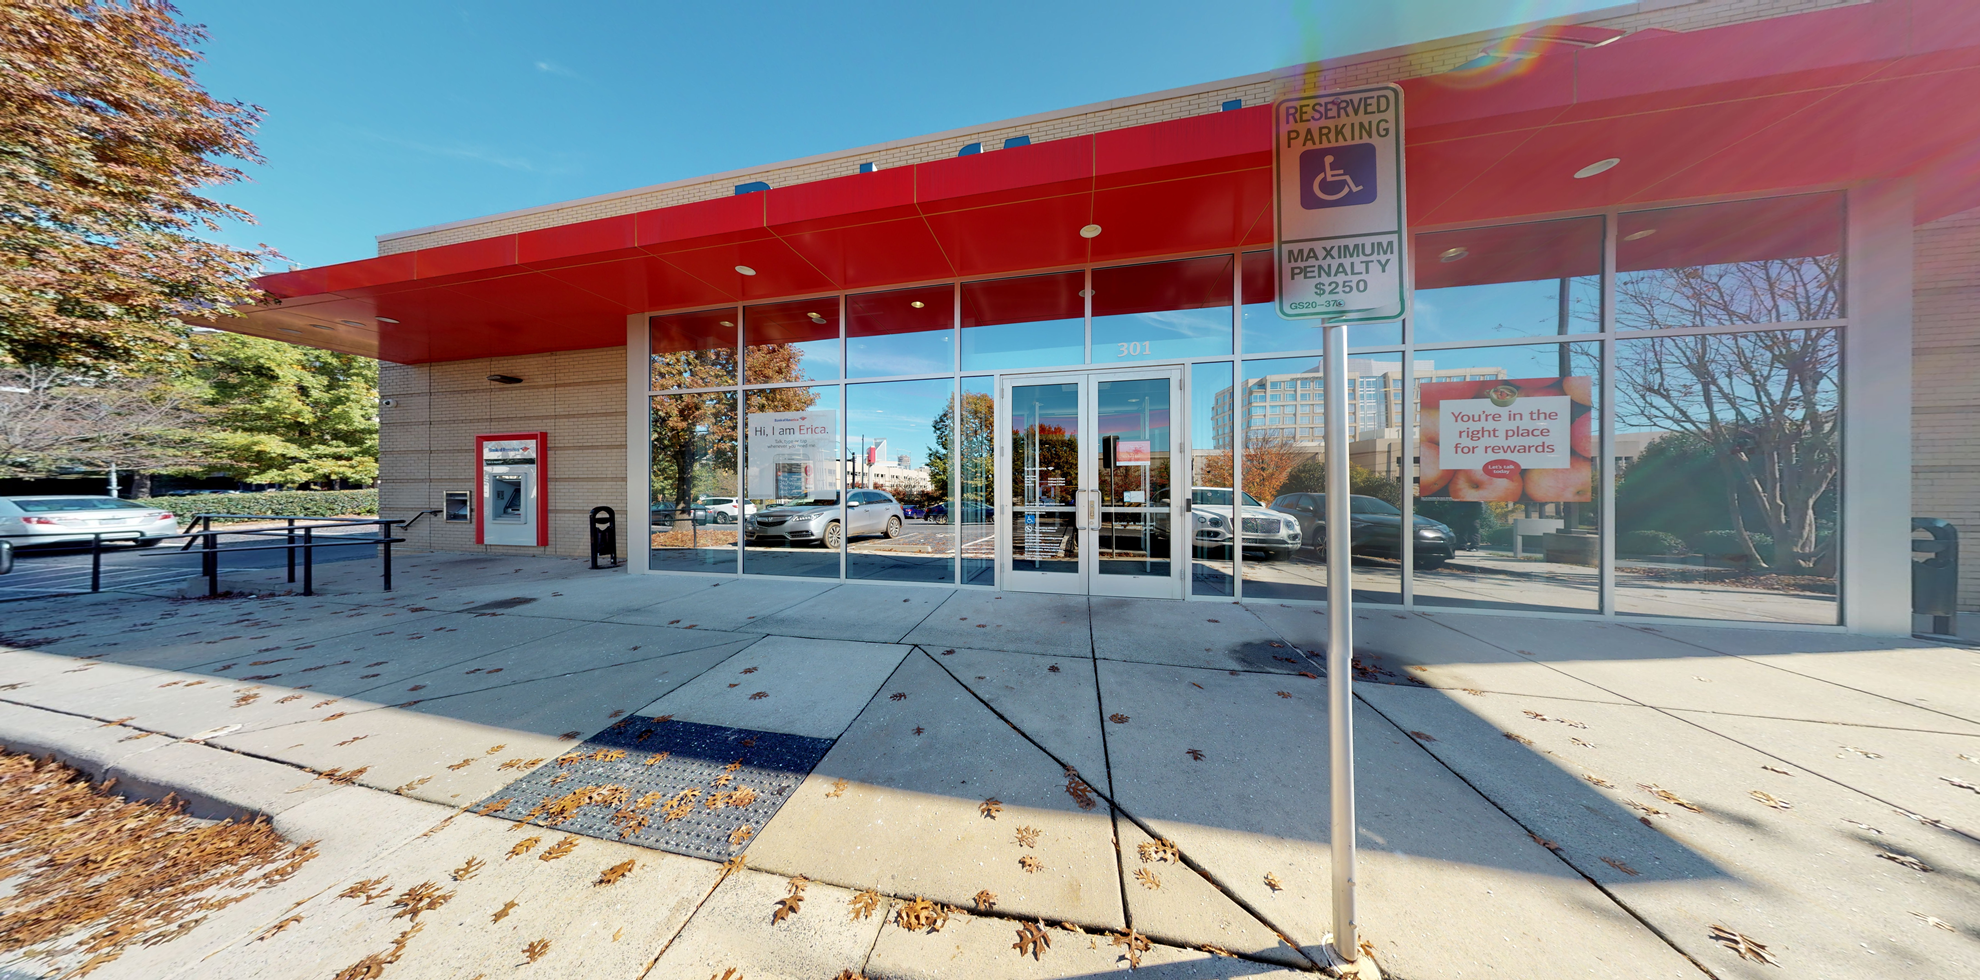 Bank of America financial center with drive-thru ATM | 301 S Kings Dr, Charlotte, NC 28204